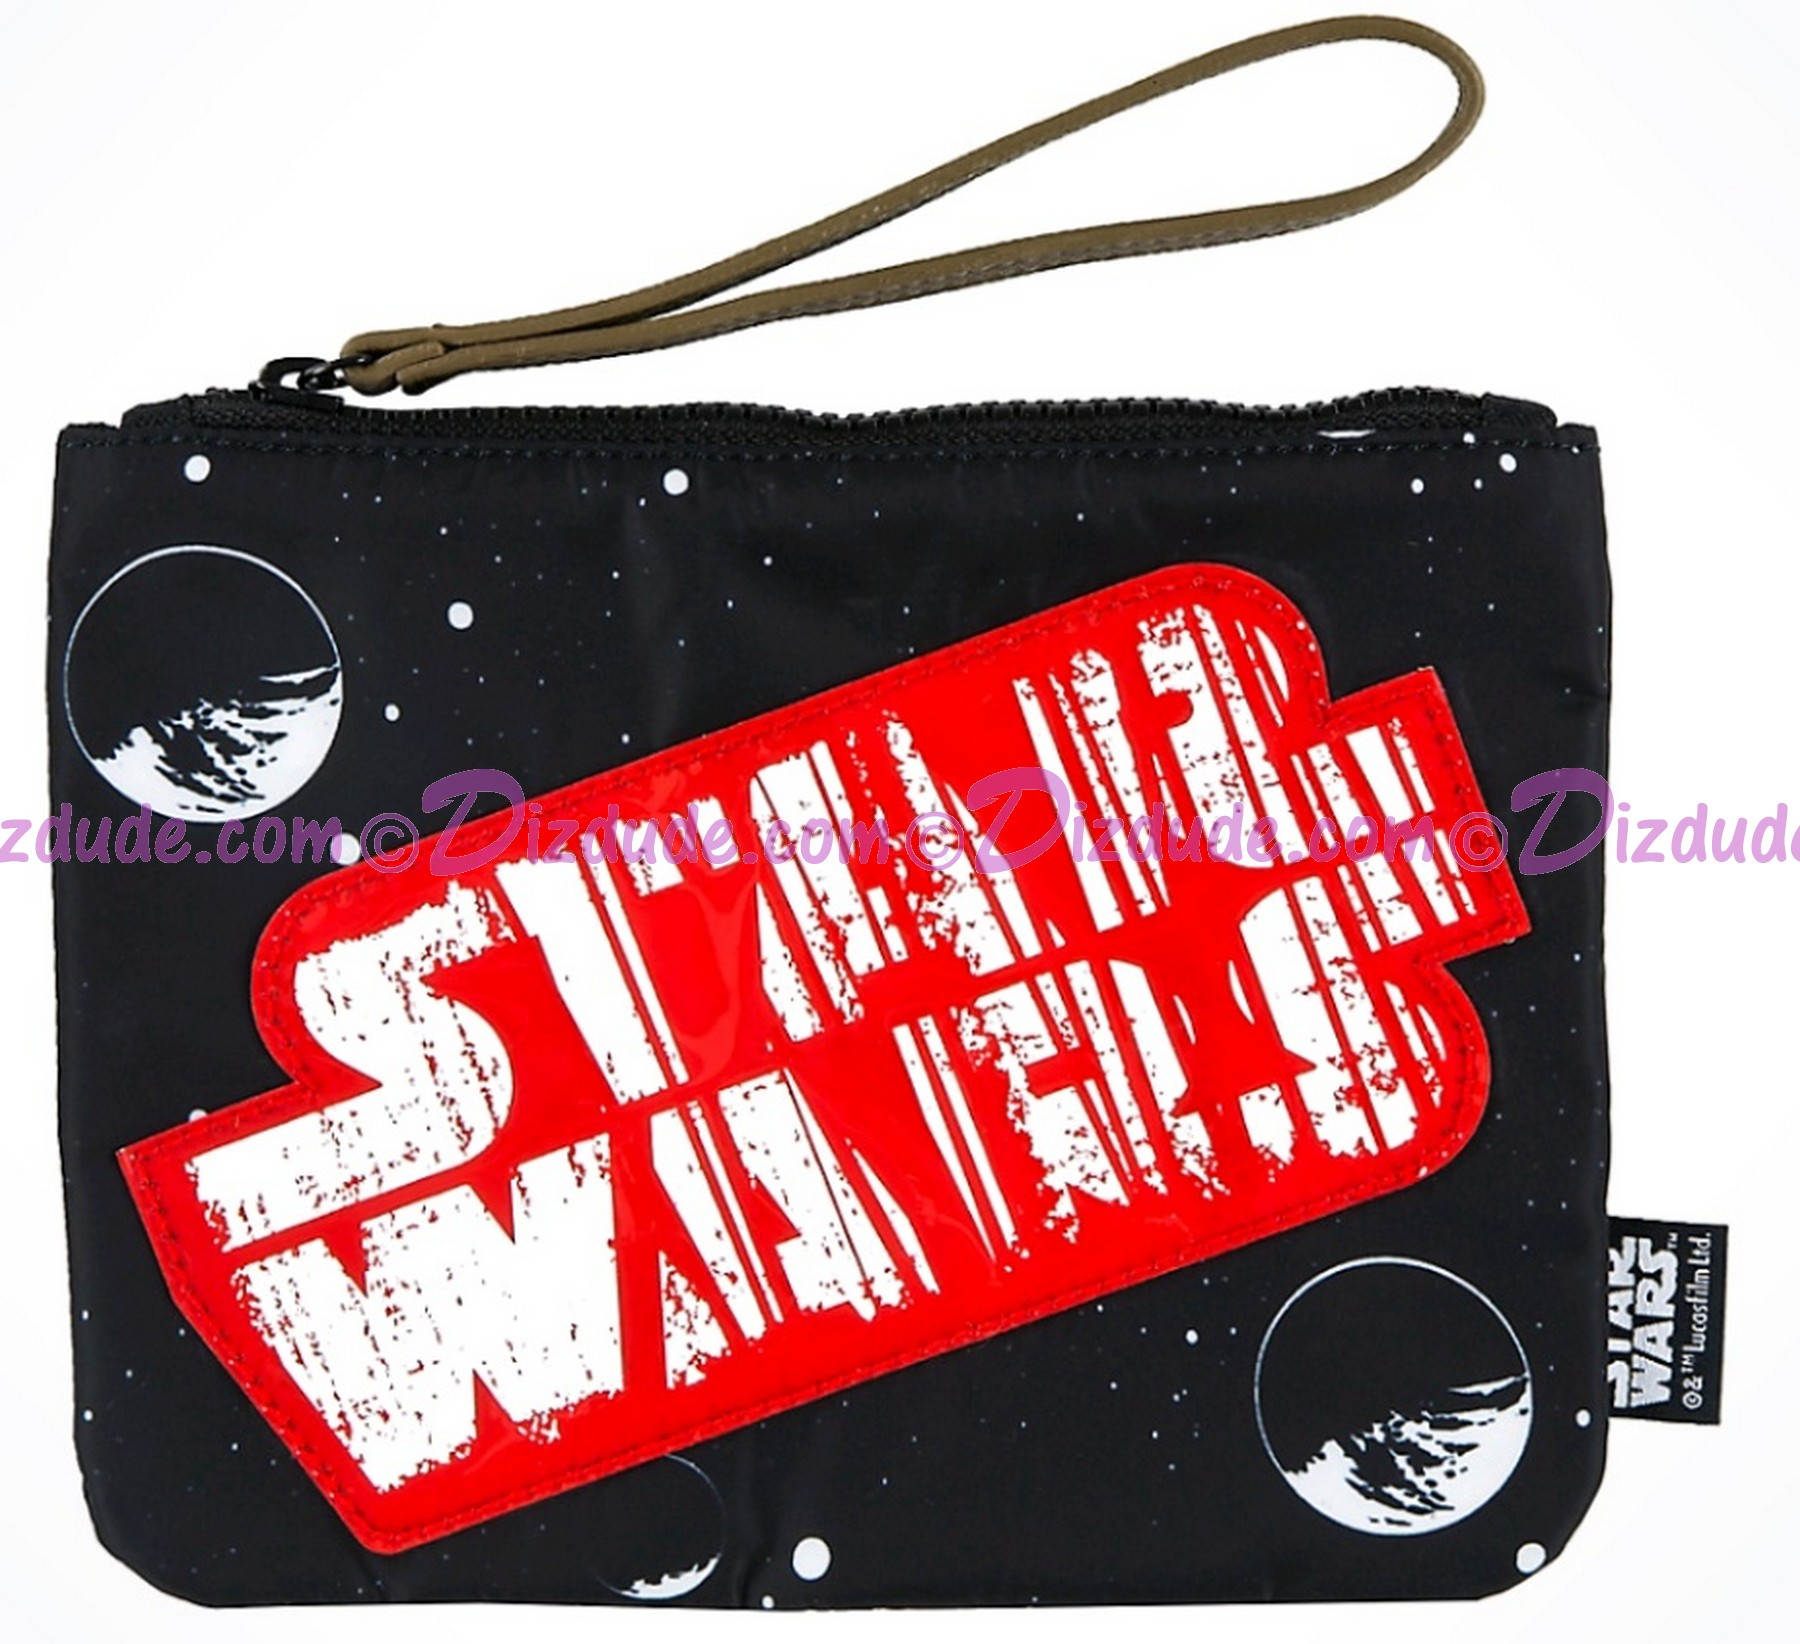 Disney Star Wars Episode VIII: The Last Jedi Wristlet © Dizdude.com